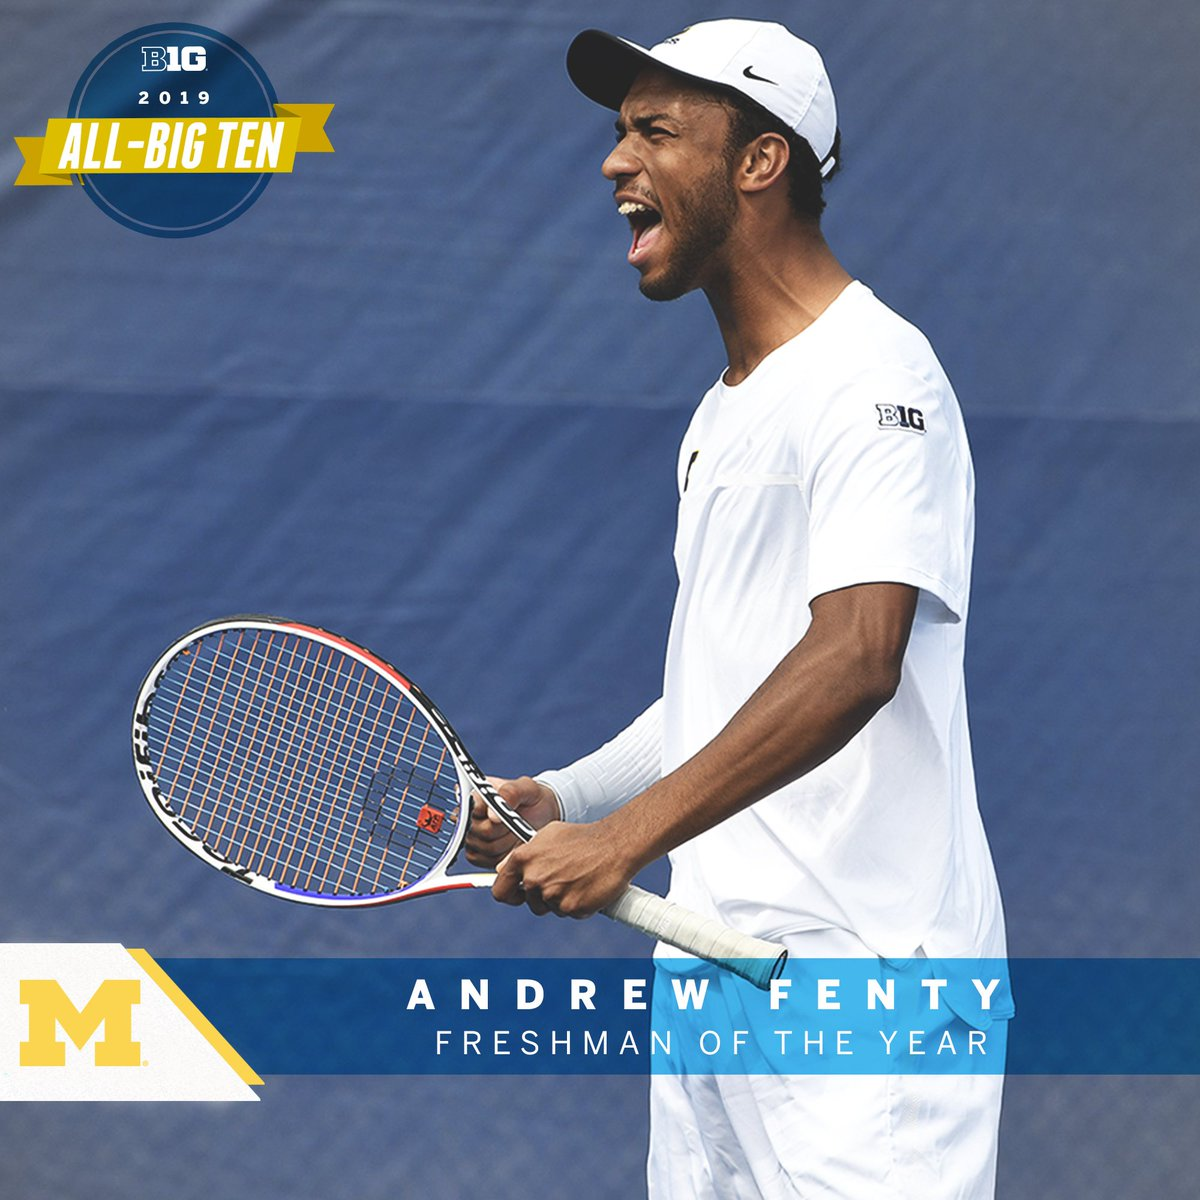 Andrew Fenty of @umichtennis named 2019 #B1GMTennis Freshman of the Year.